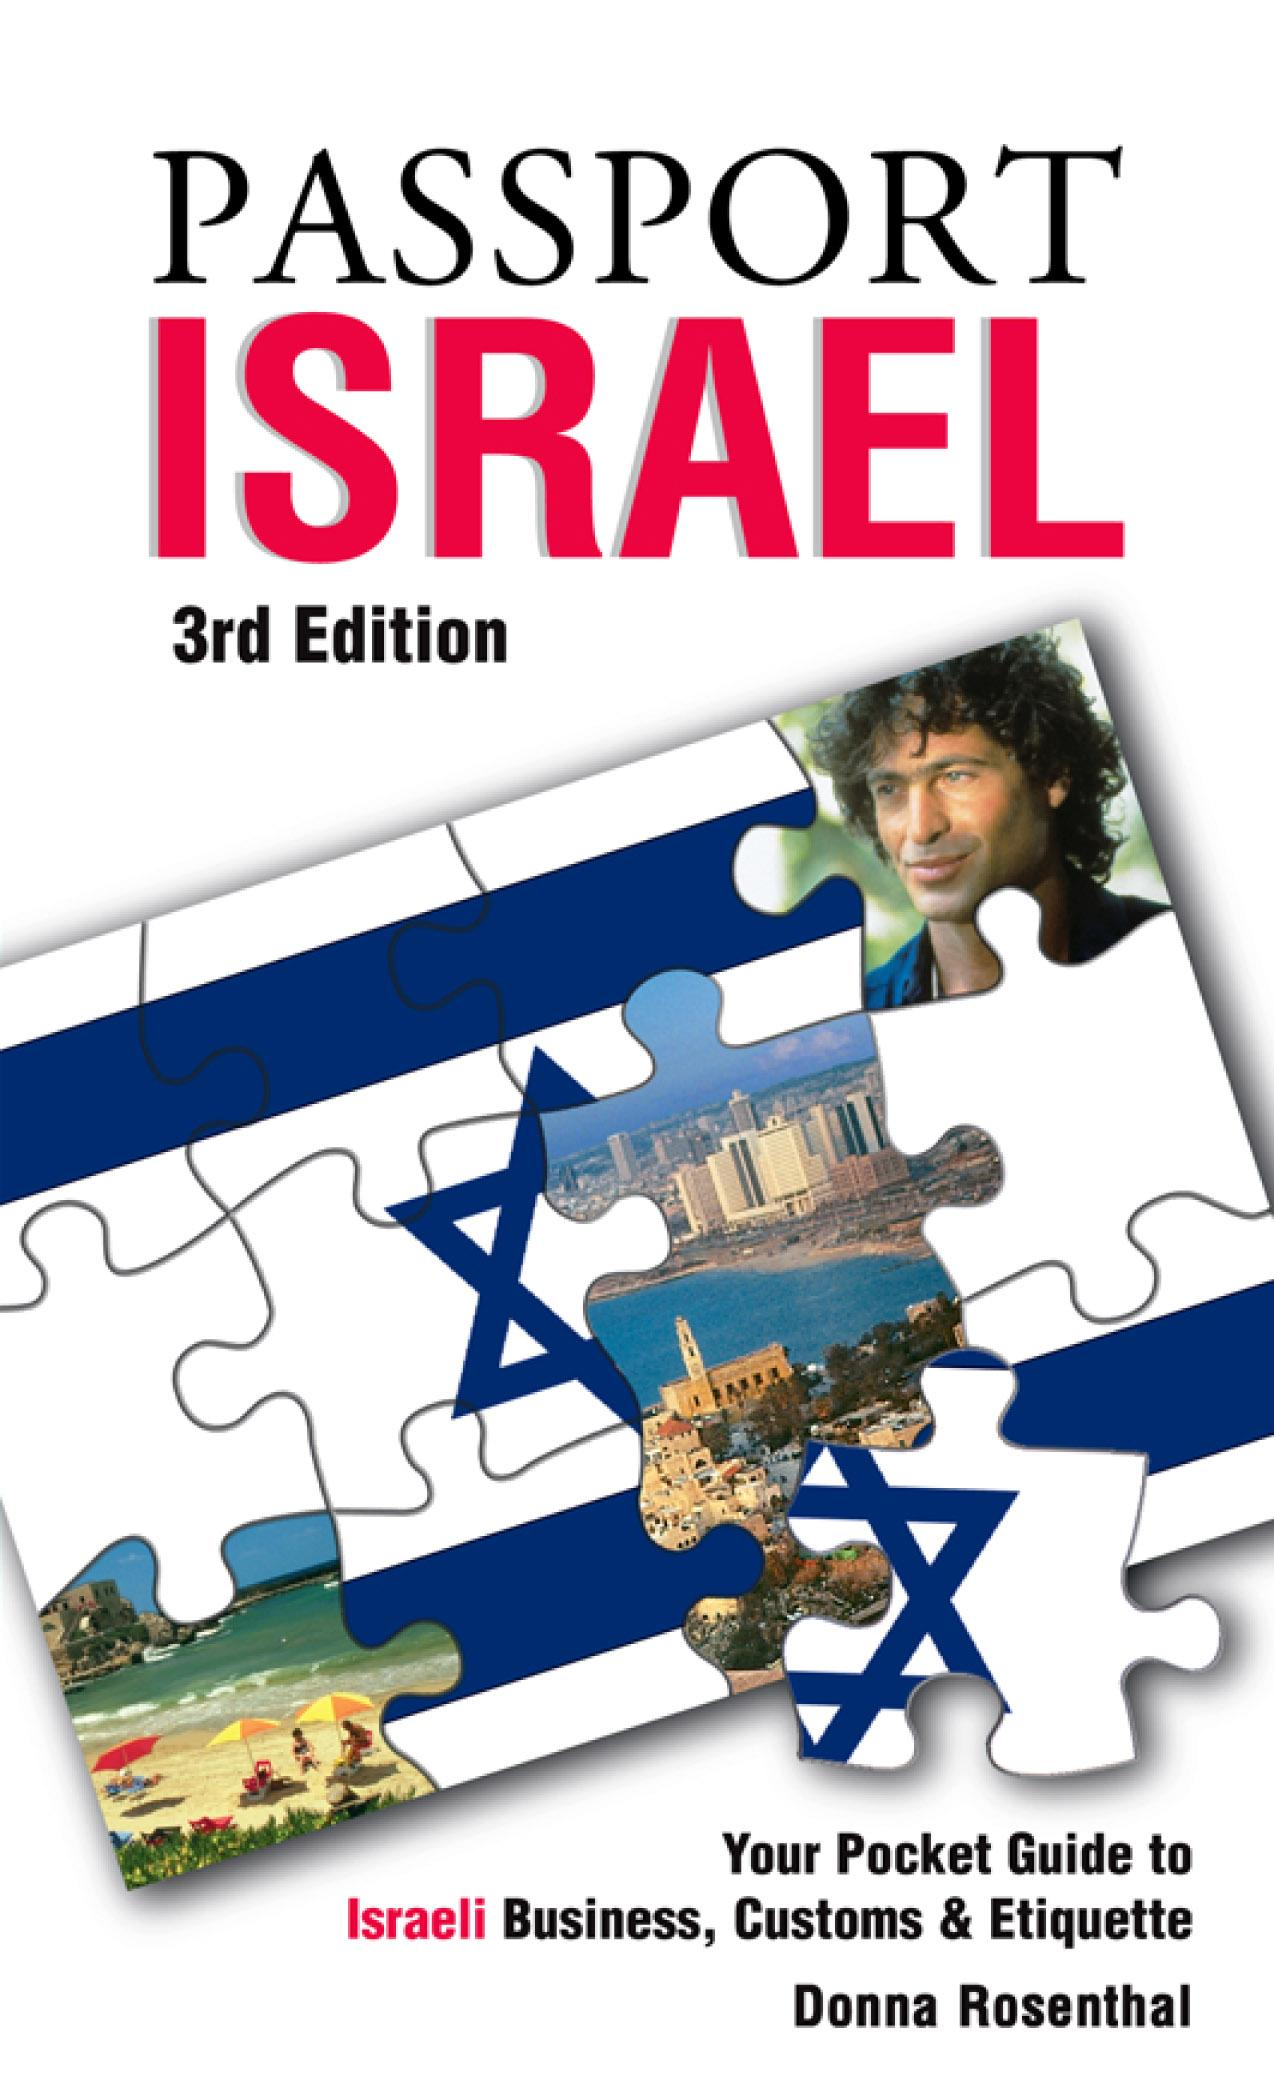 Passport Israel, 3rd: Your Pocket Guide to Israeli Business, Customs & Etiquette